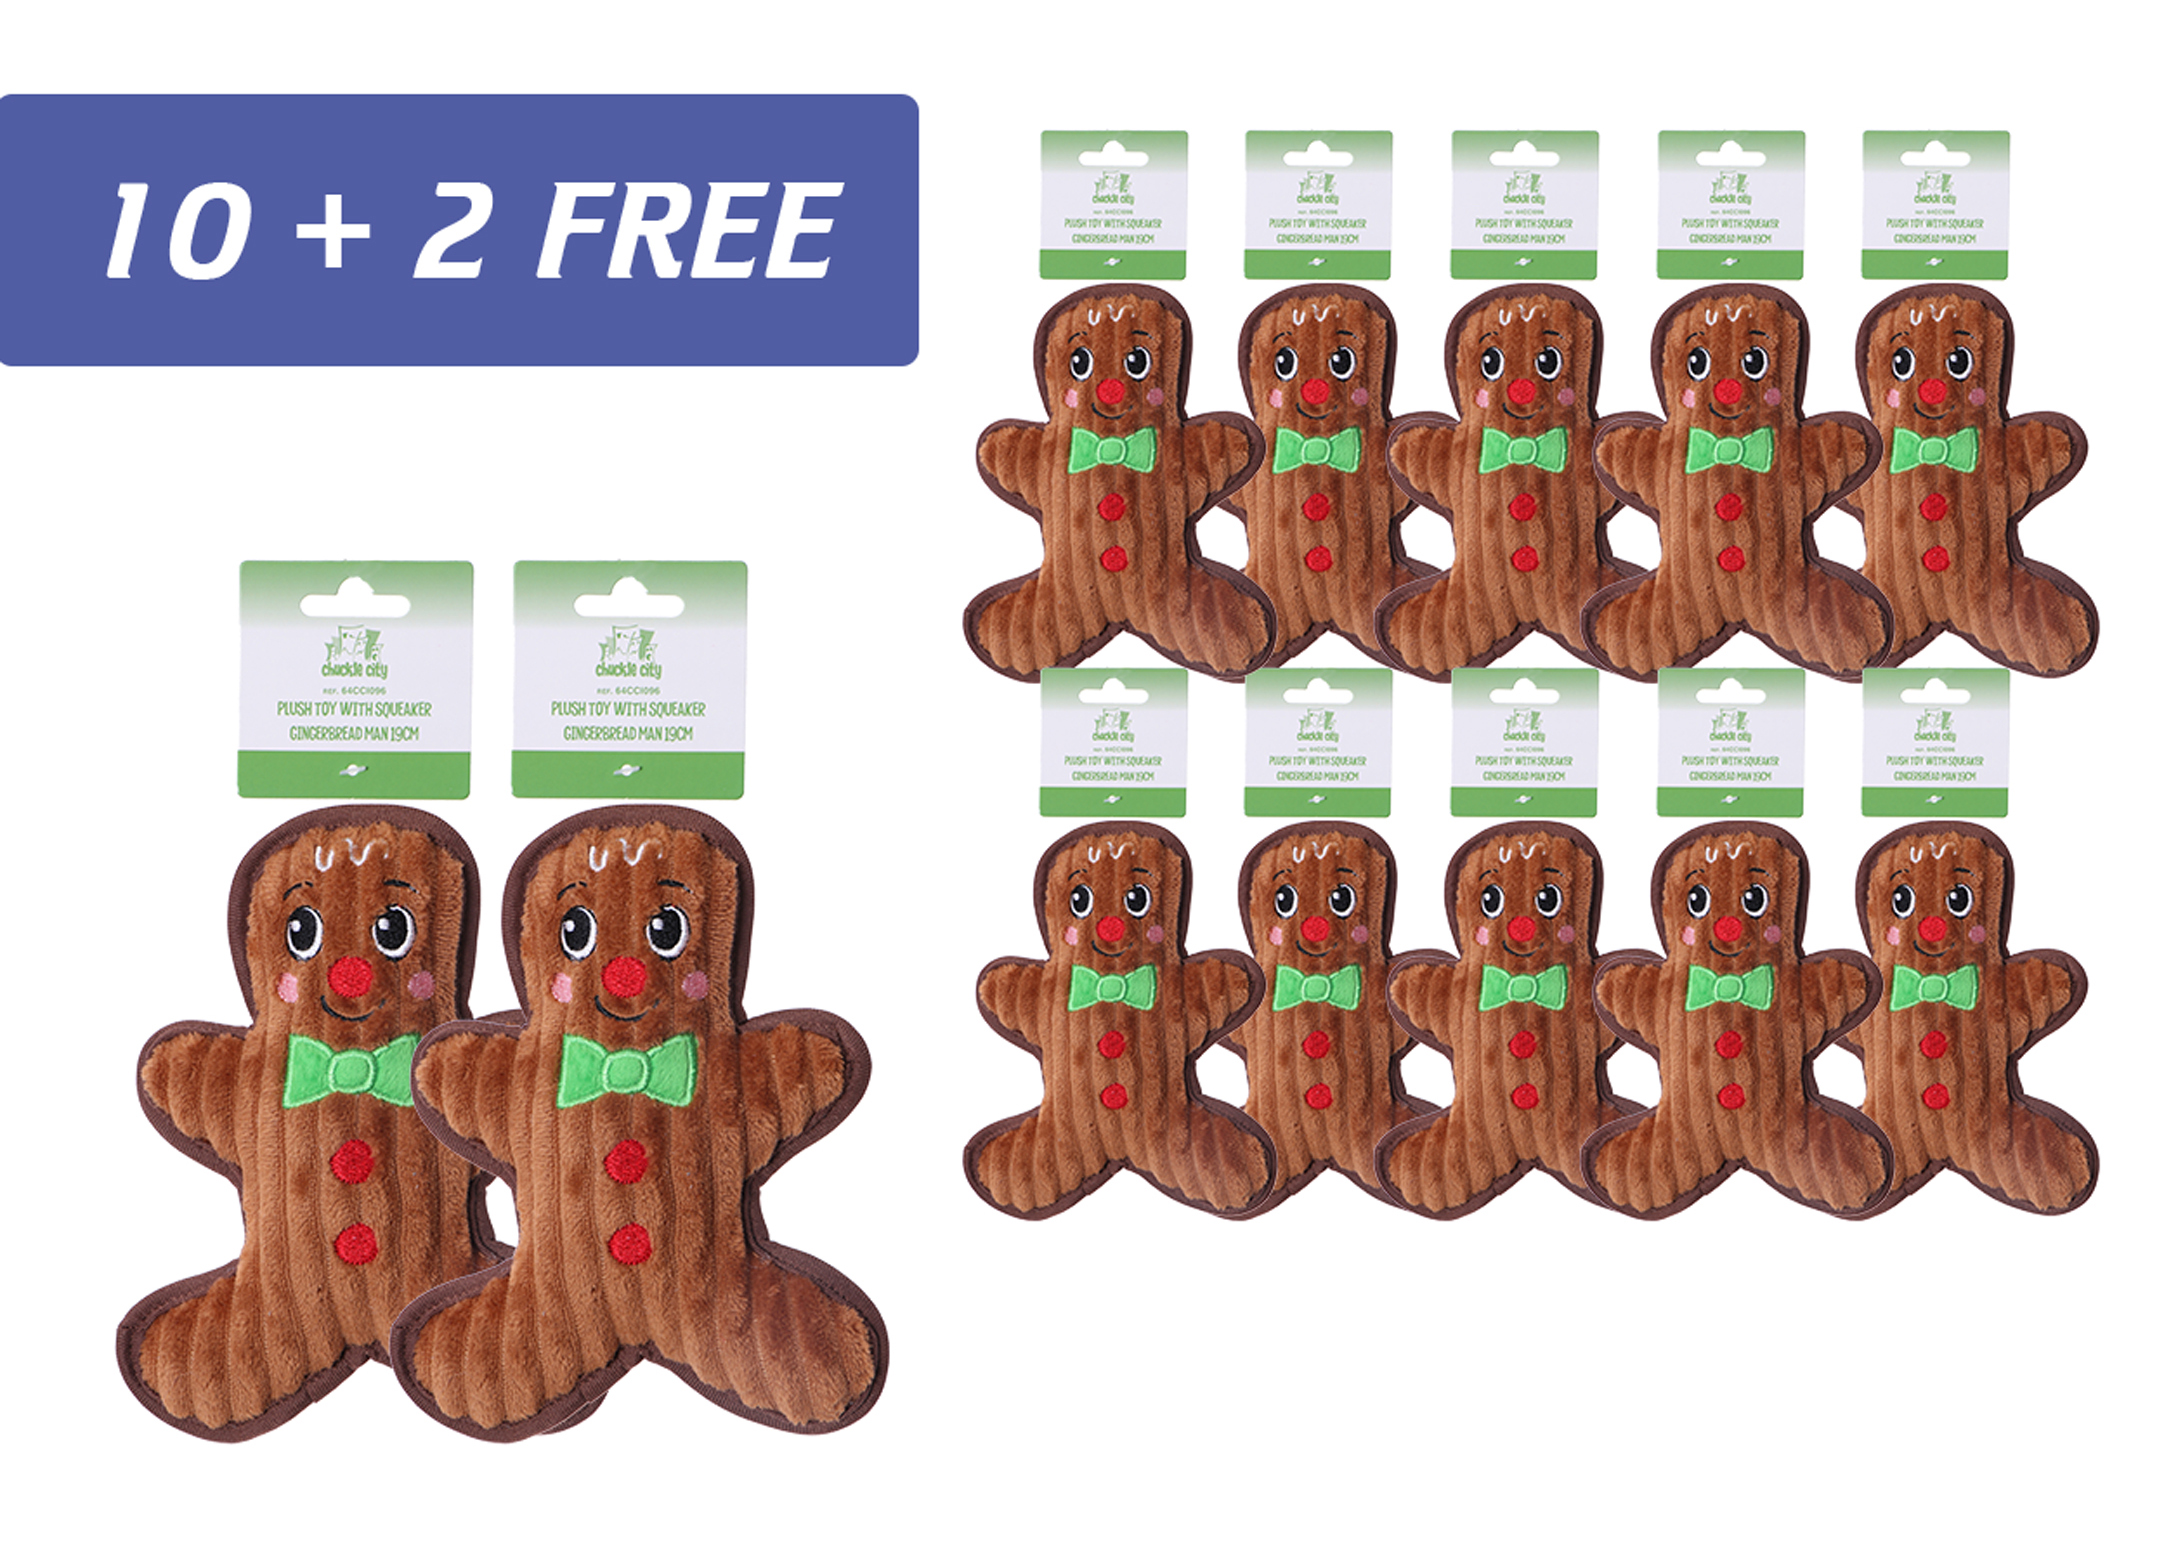 Chuckle City promo 10+2 free Plush Toy with Squeaker Gingerbread Man 19 cm